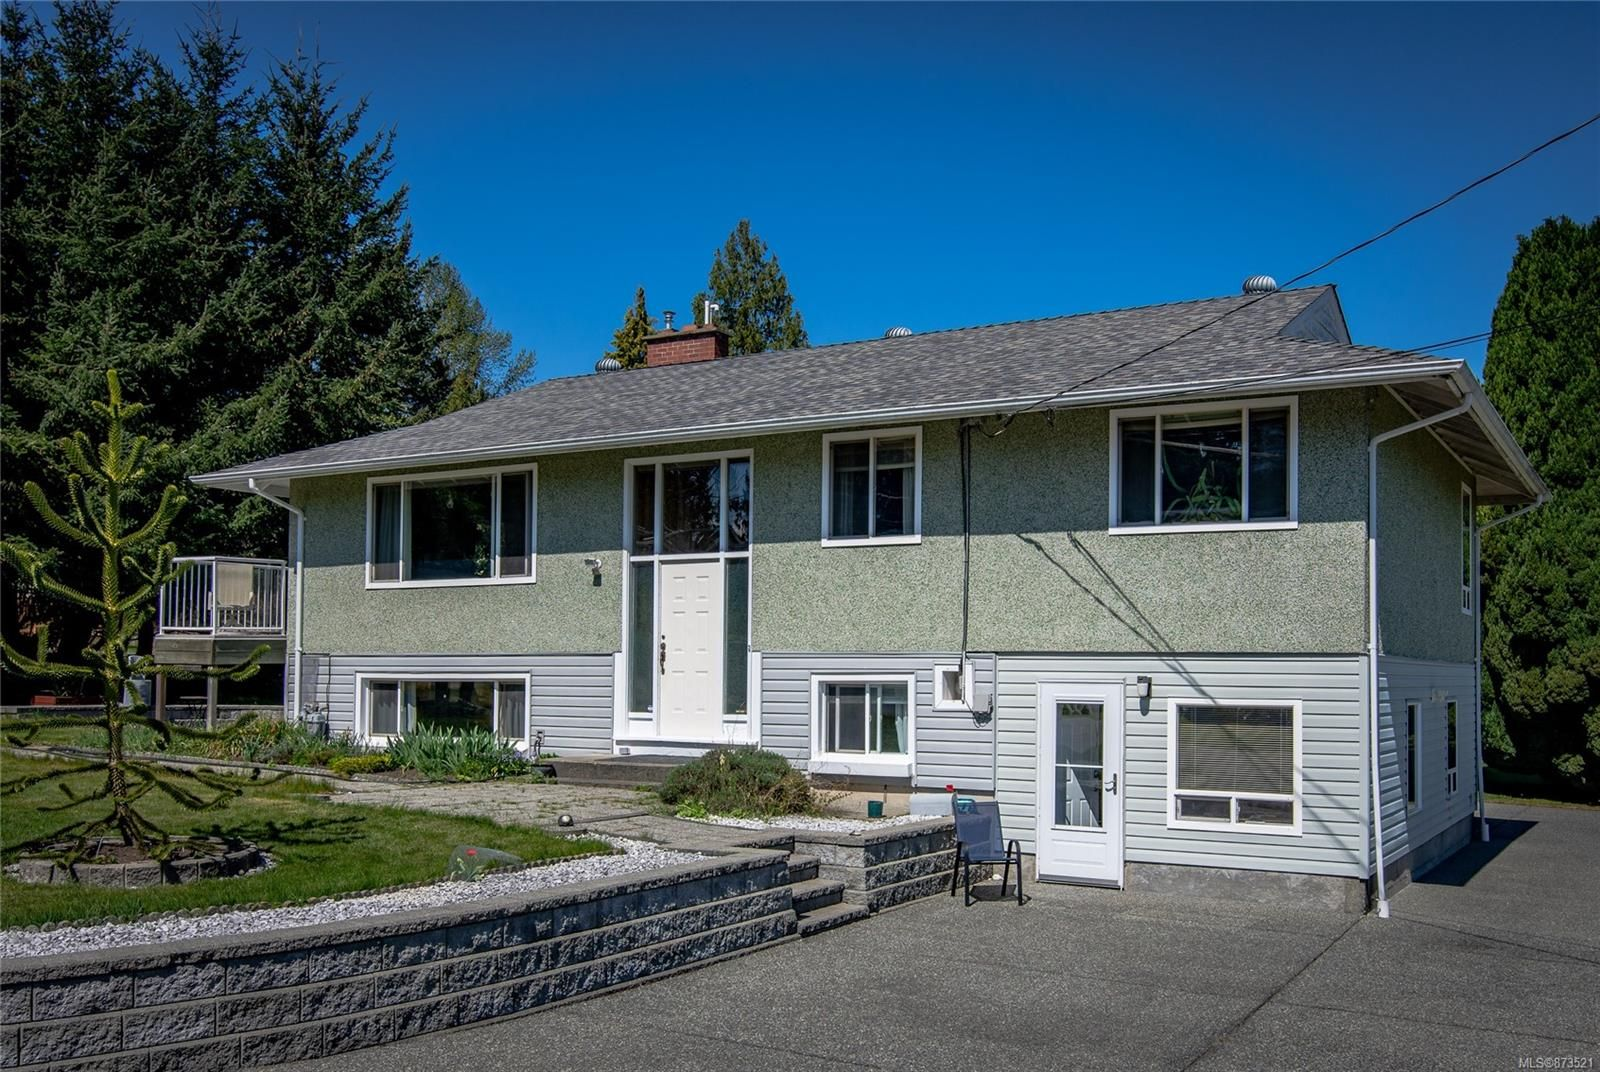 Main Photo: 1687 Centennary Dr in : Na Chase River House for sale (Nanaimo)  : MLS®# 873521